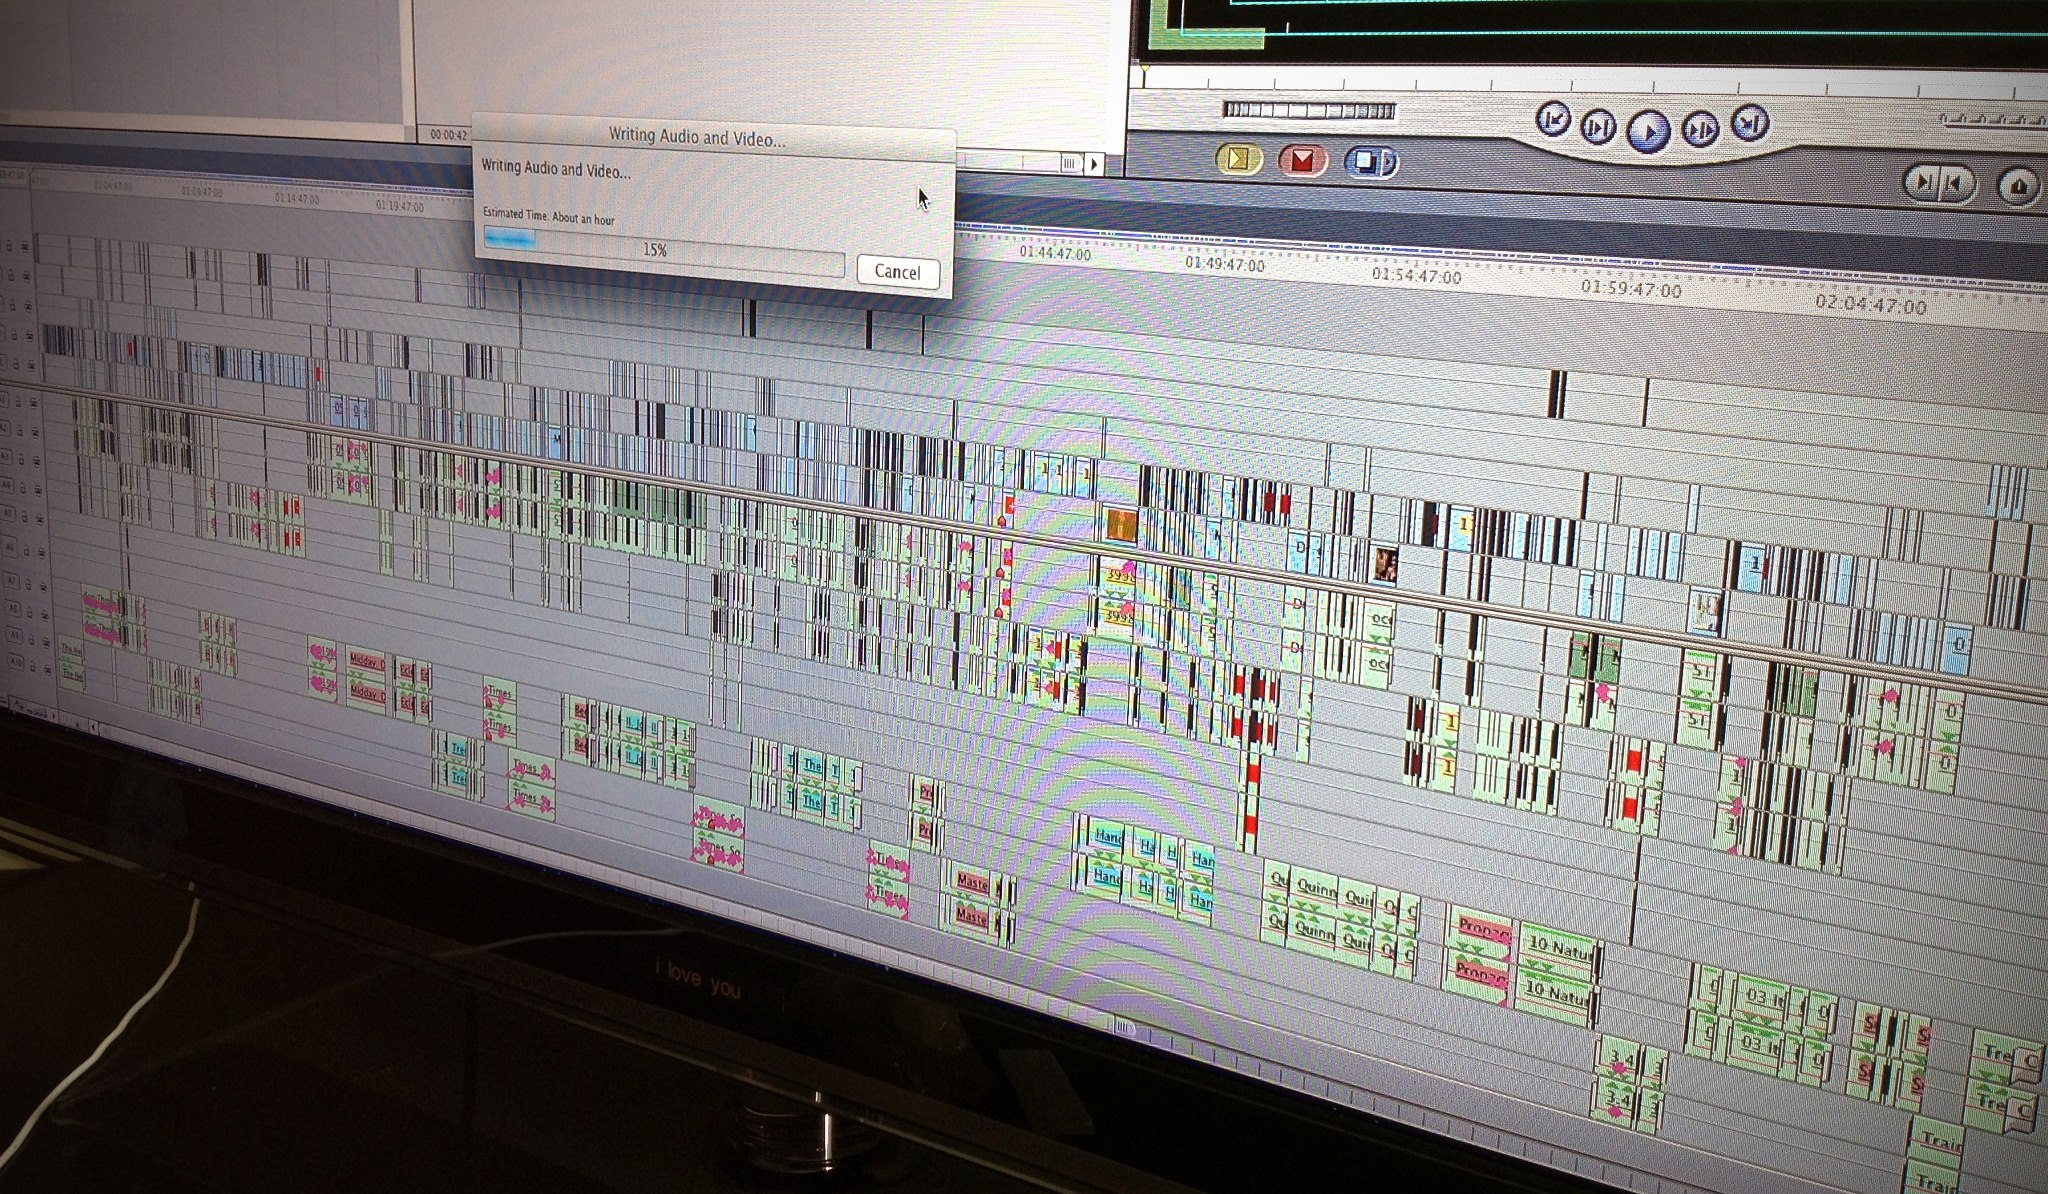 Our final timeline - coming to iTunes soon